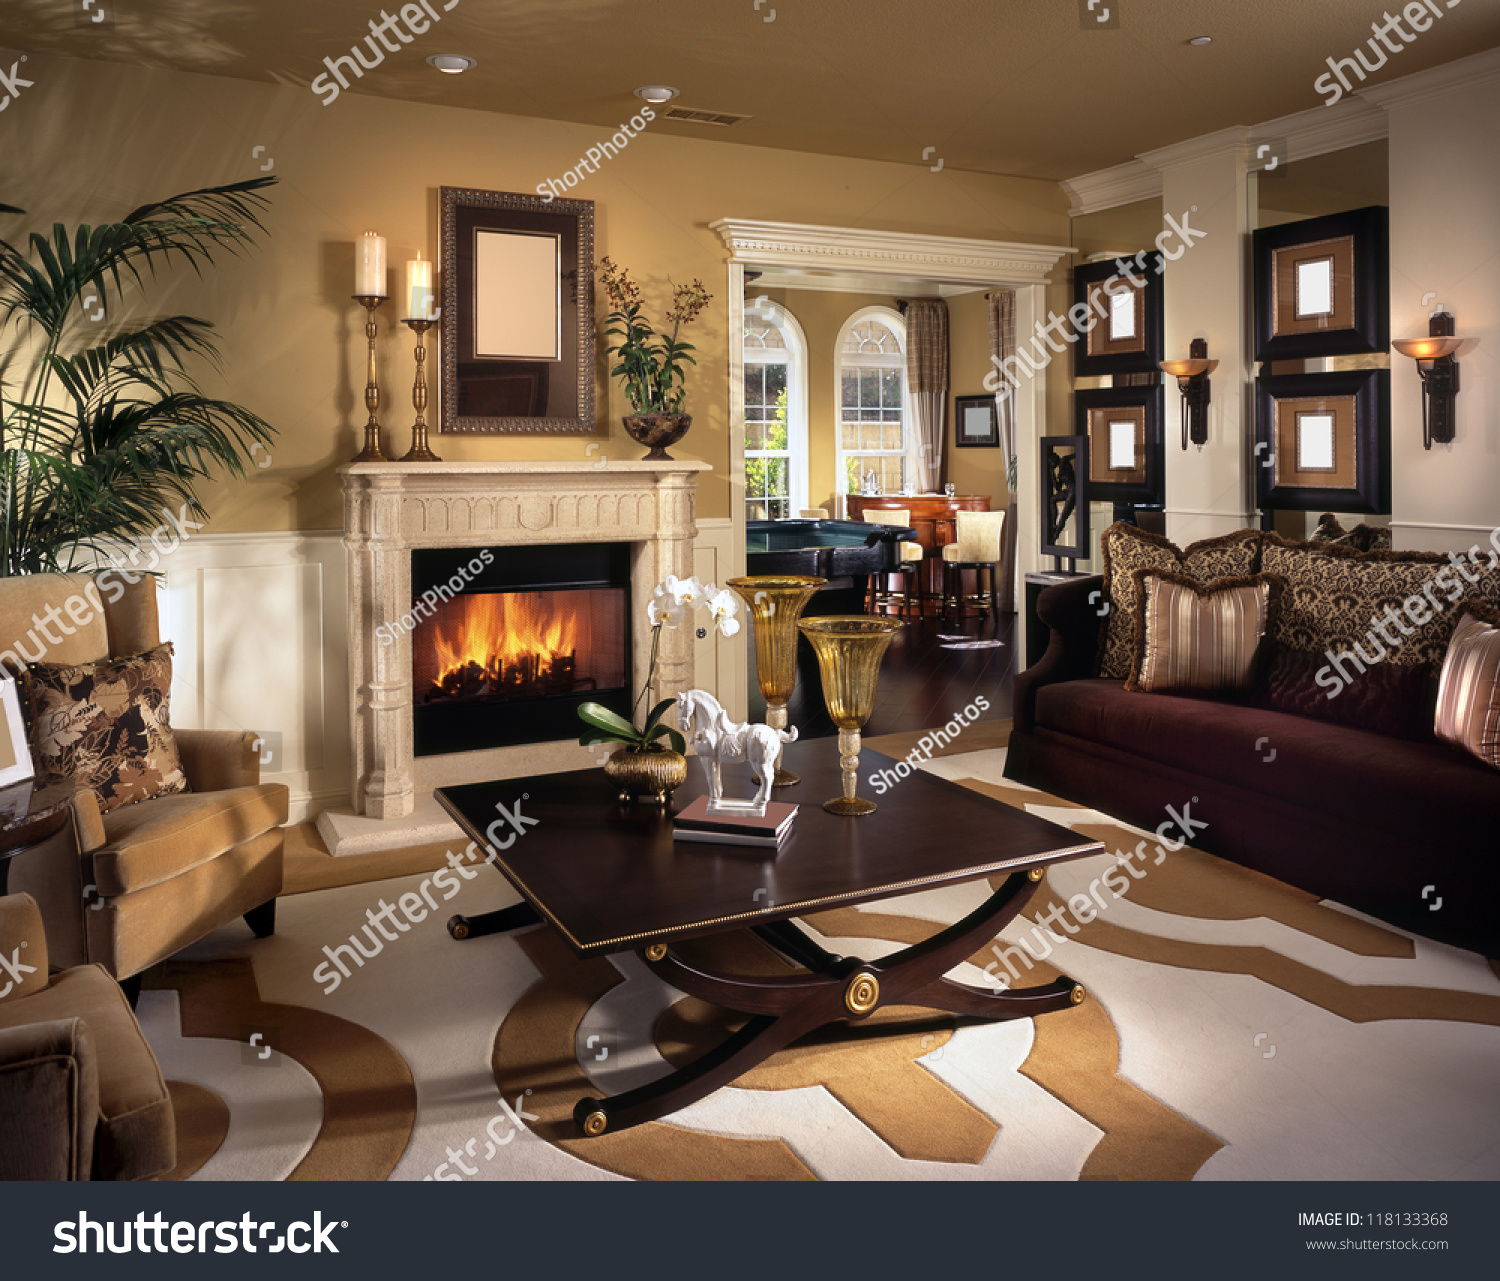 Luxury Kitchen Room Interior Bright Wooden Stock Vector: Beautiful Living Room Architecture Stock Images Stock